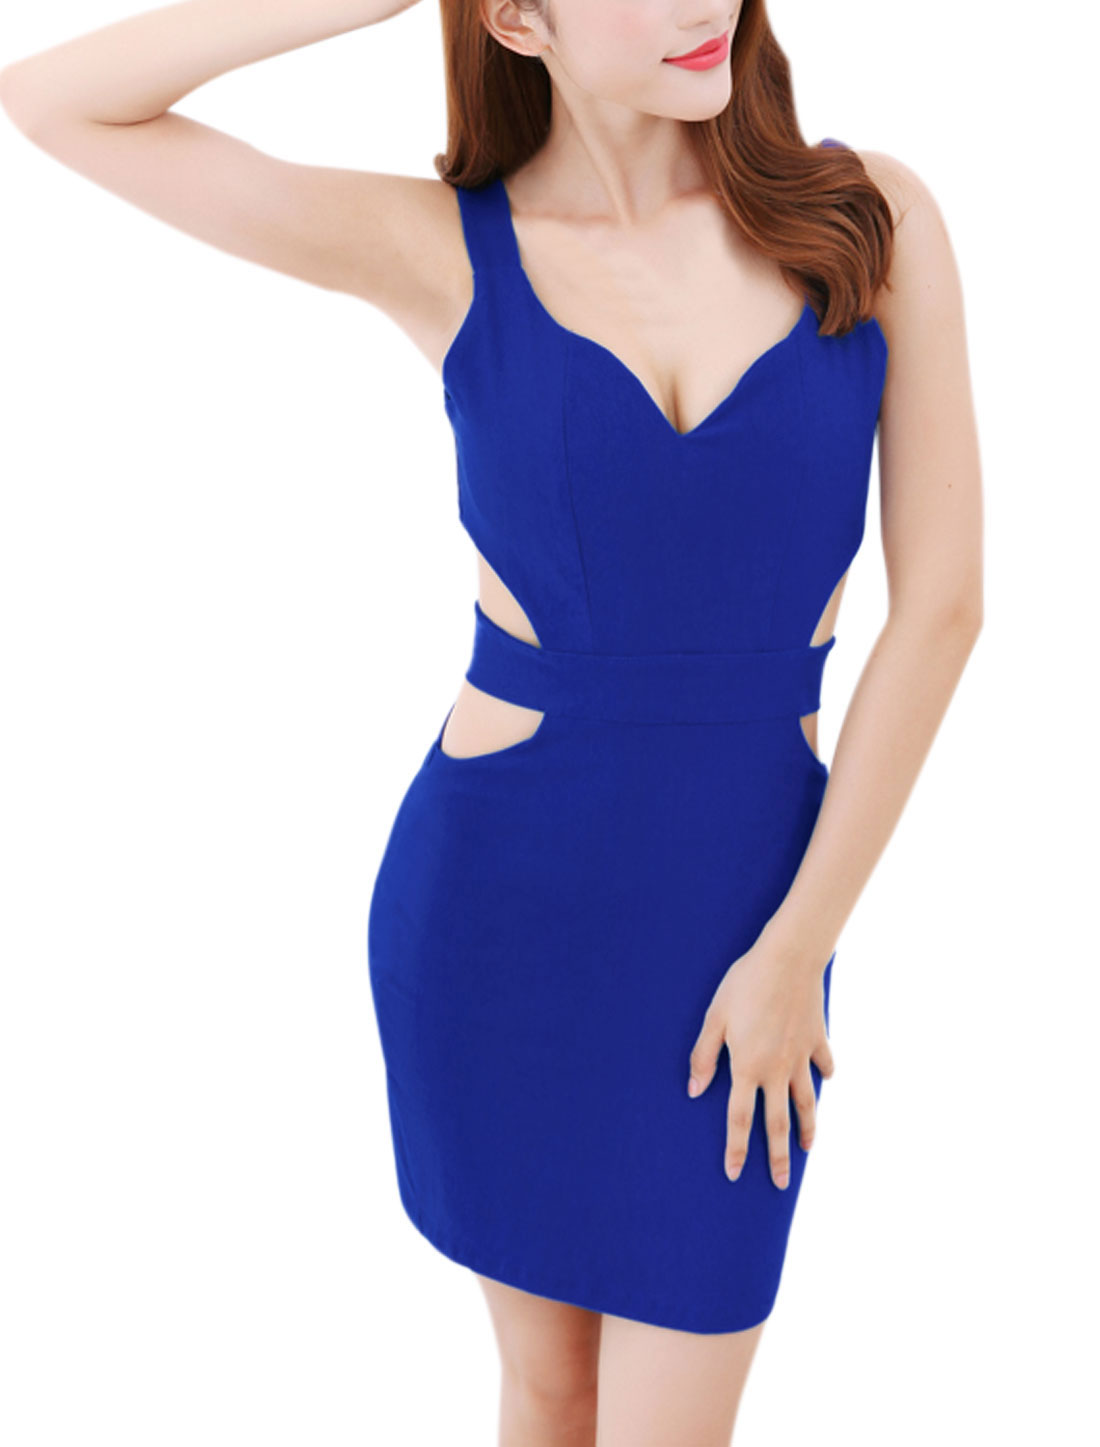 Lady Deep V Neck Cut Out Sleeveless Pencil Dress Royal Blue XS